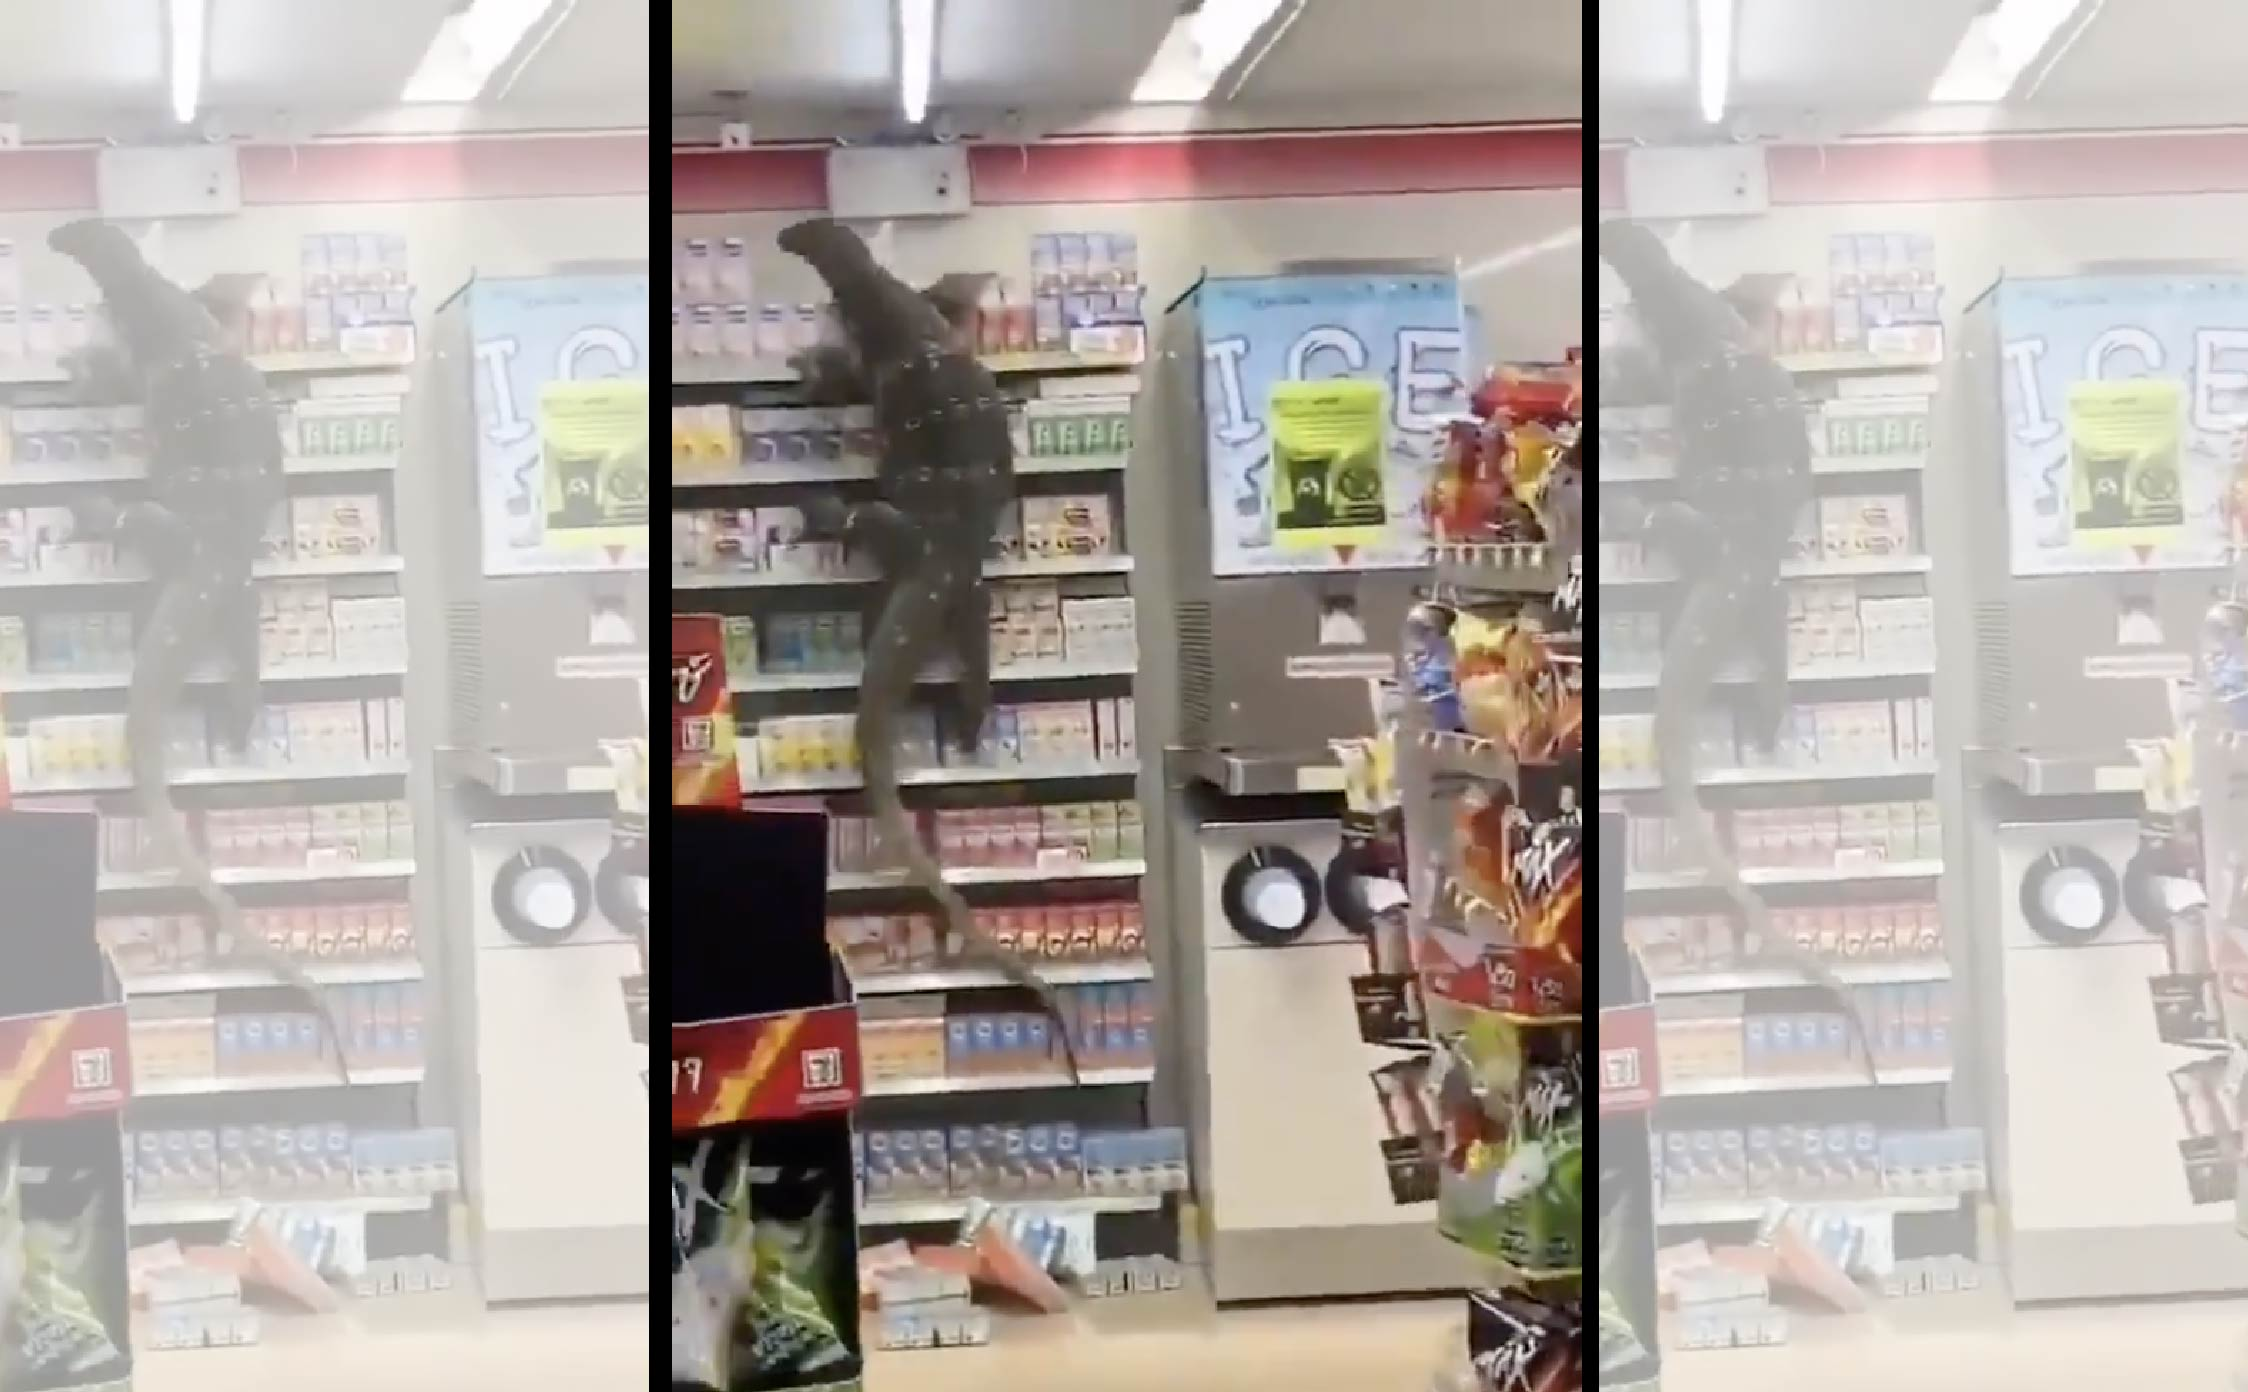 [VIDEO] What Would You Do If You Saw This On Aisle 2 in Your Grocery Store?